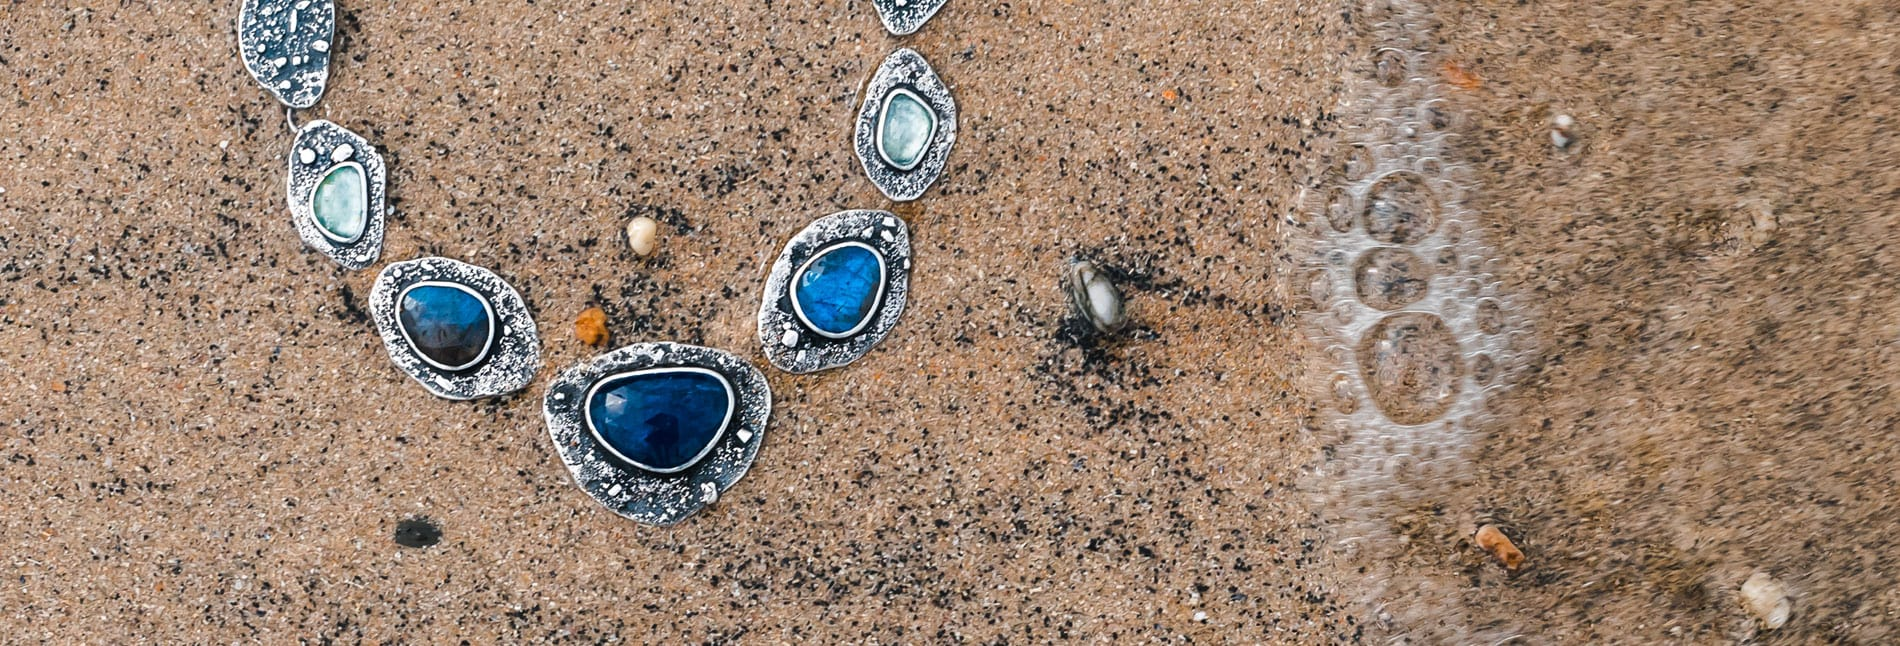 Rugged statement necklace in the sand at the beach